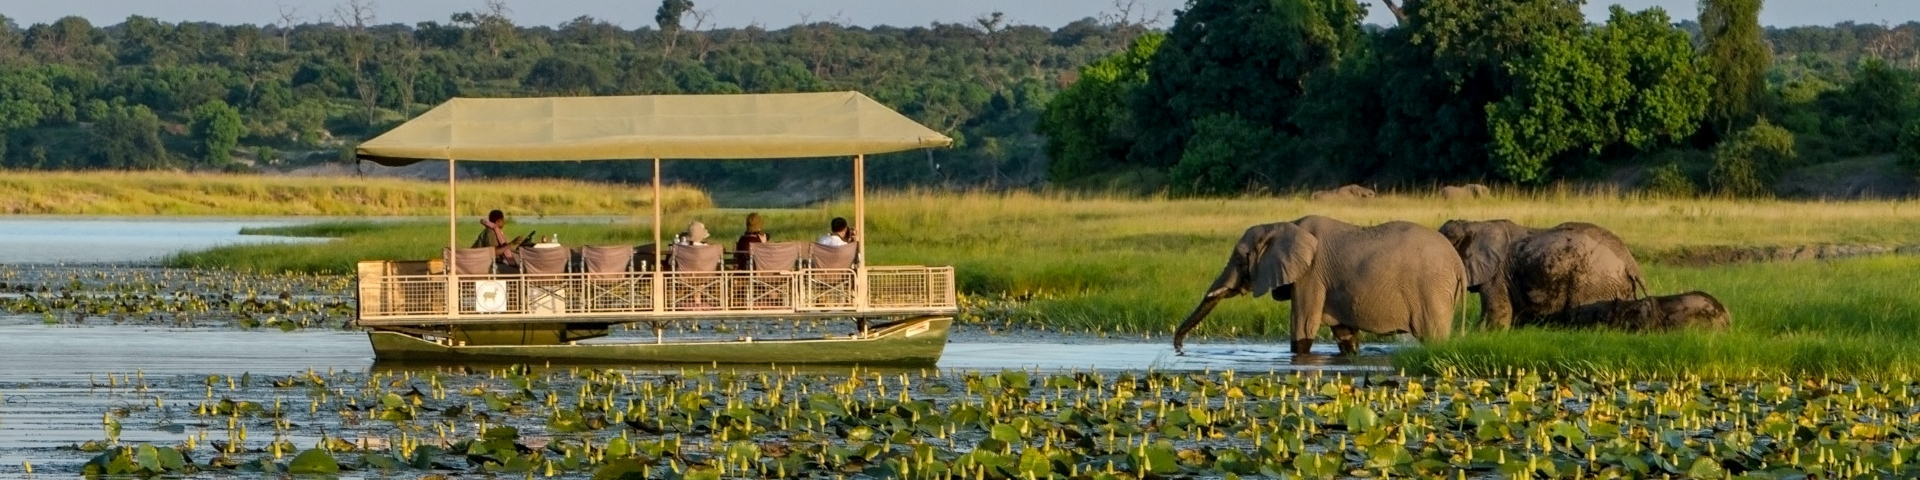 11 Day Botswana and Vic Falls Safari - Chobe River - Botswana